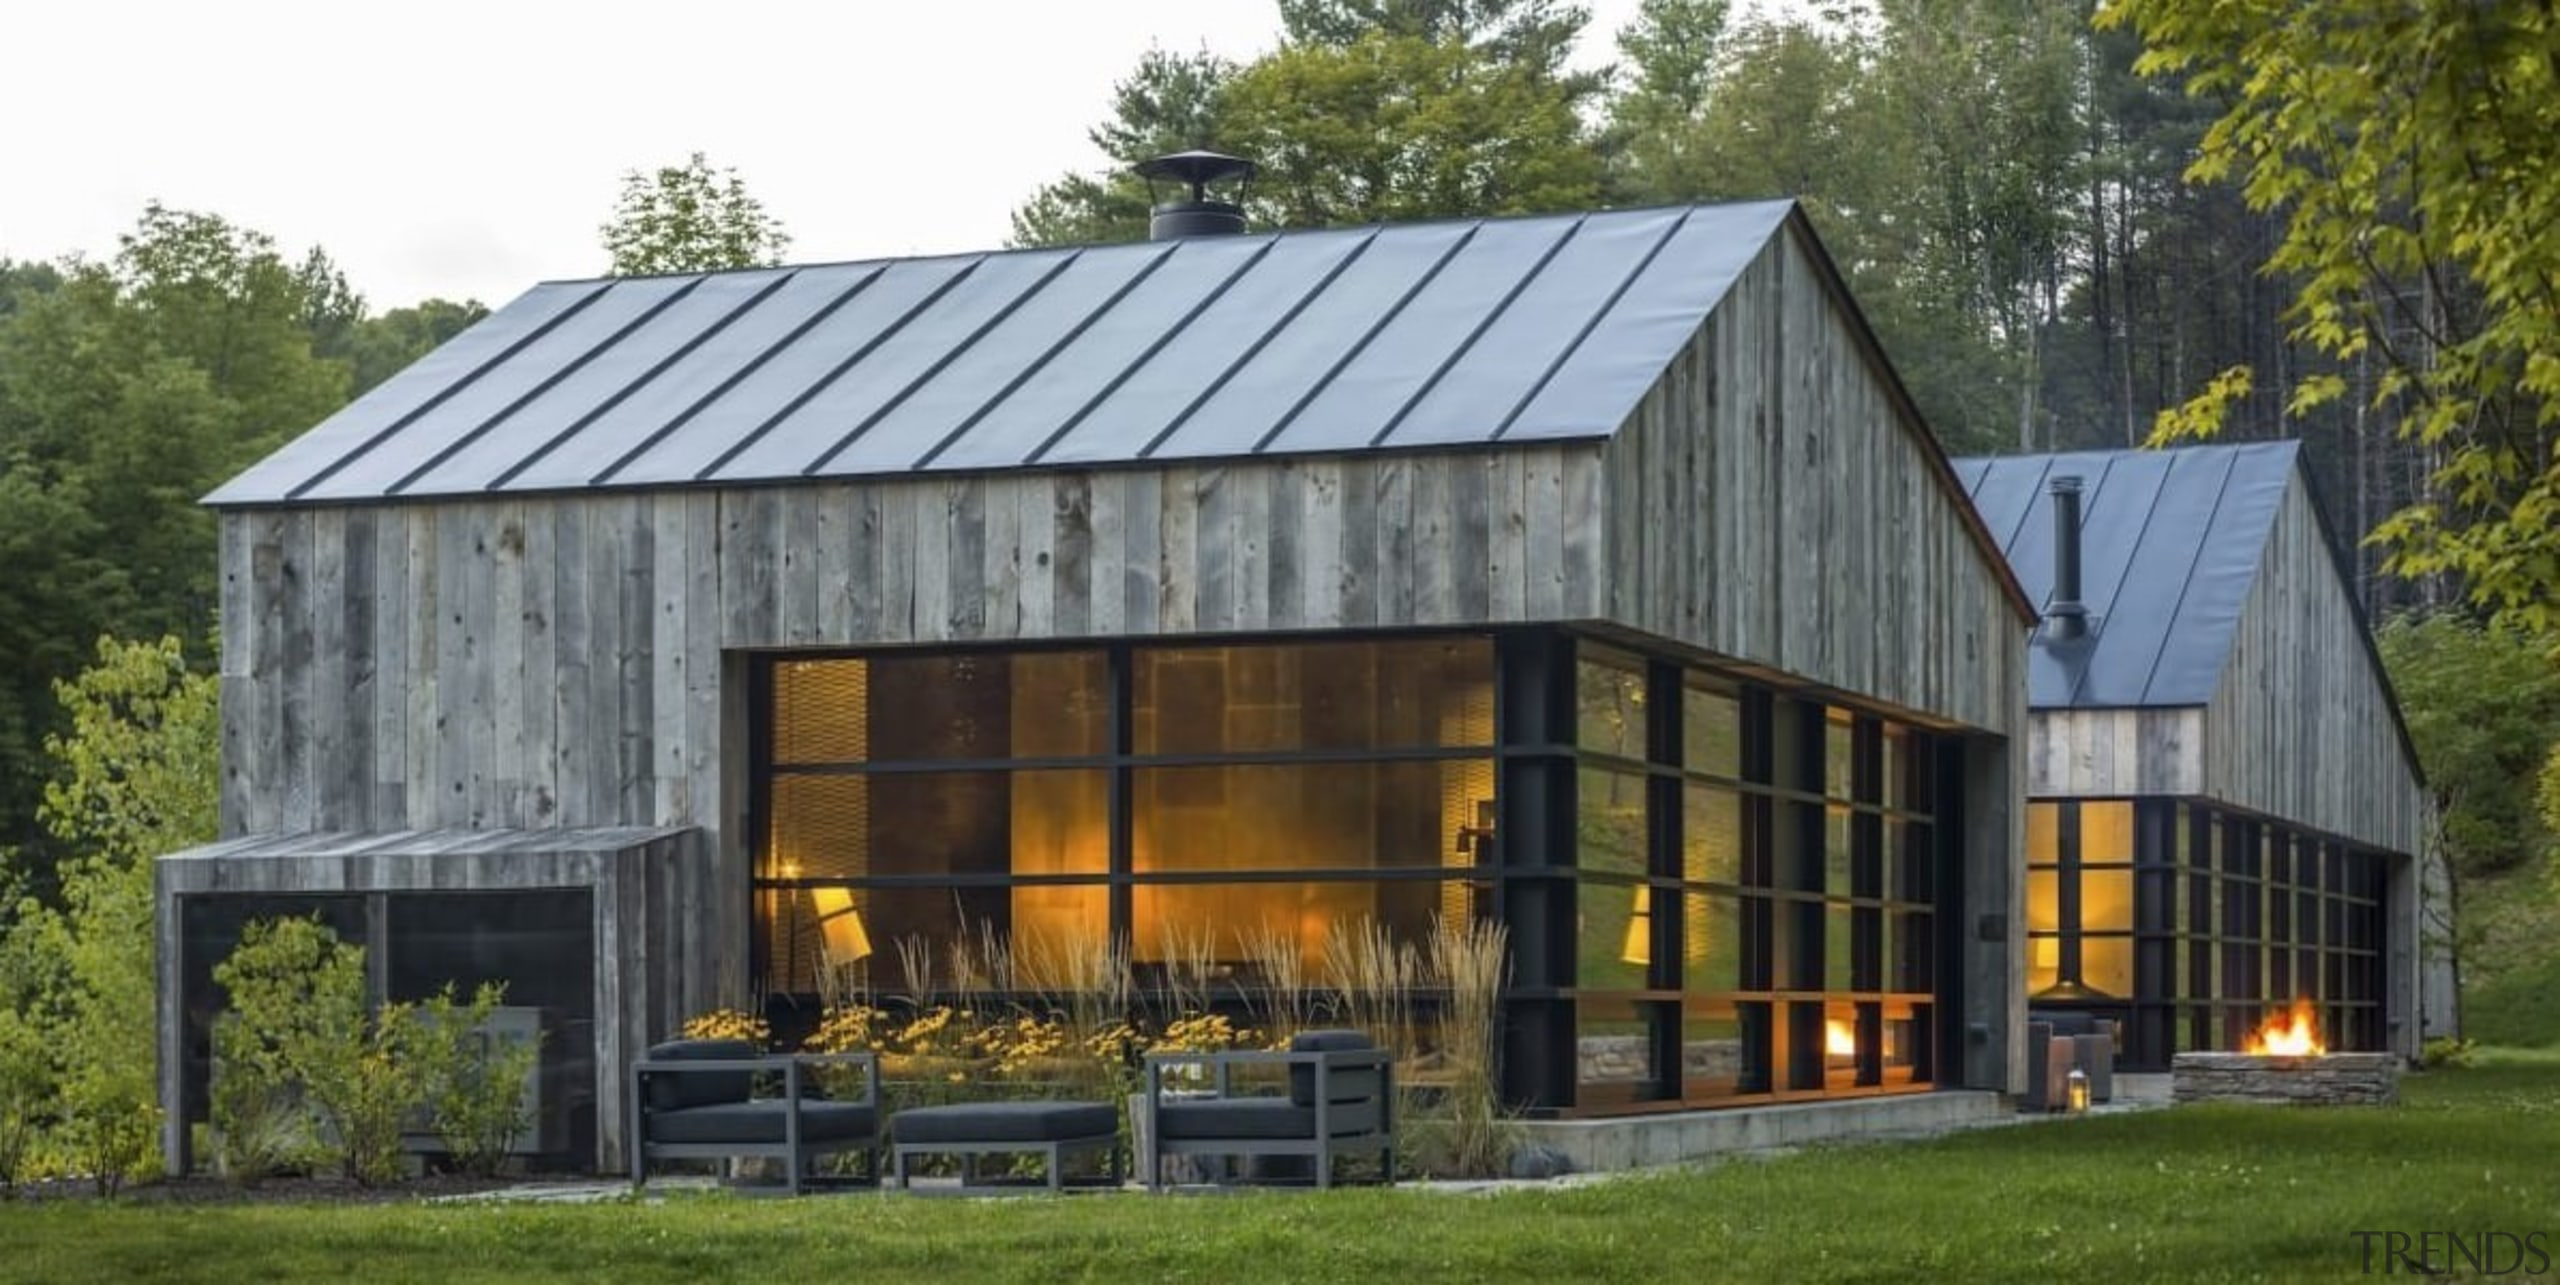 A forested home by Birdseye VT - A barn, cottage, farmhouse, home, house, hut, real estate, shed, brown, gray